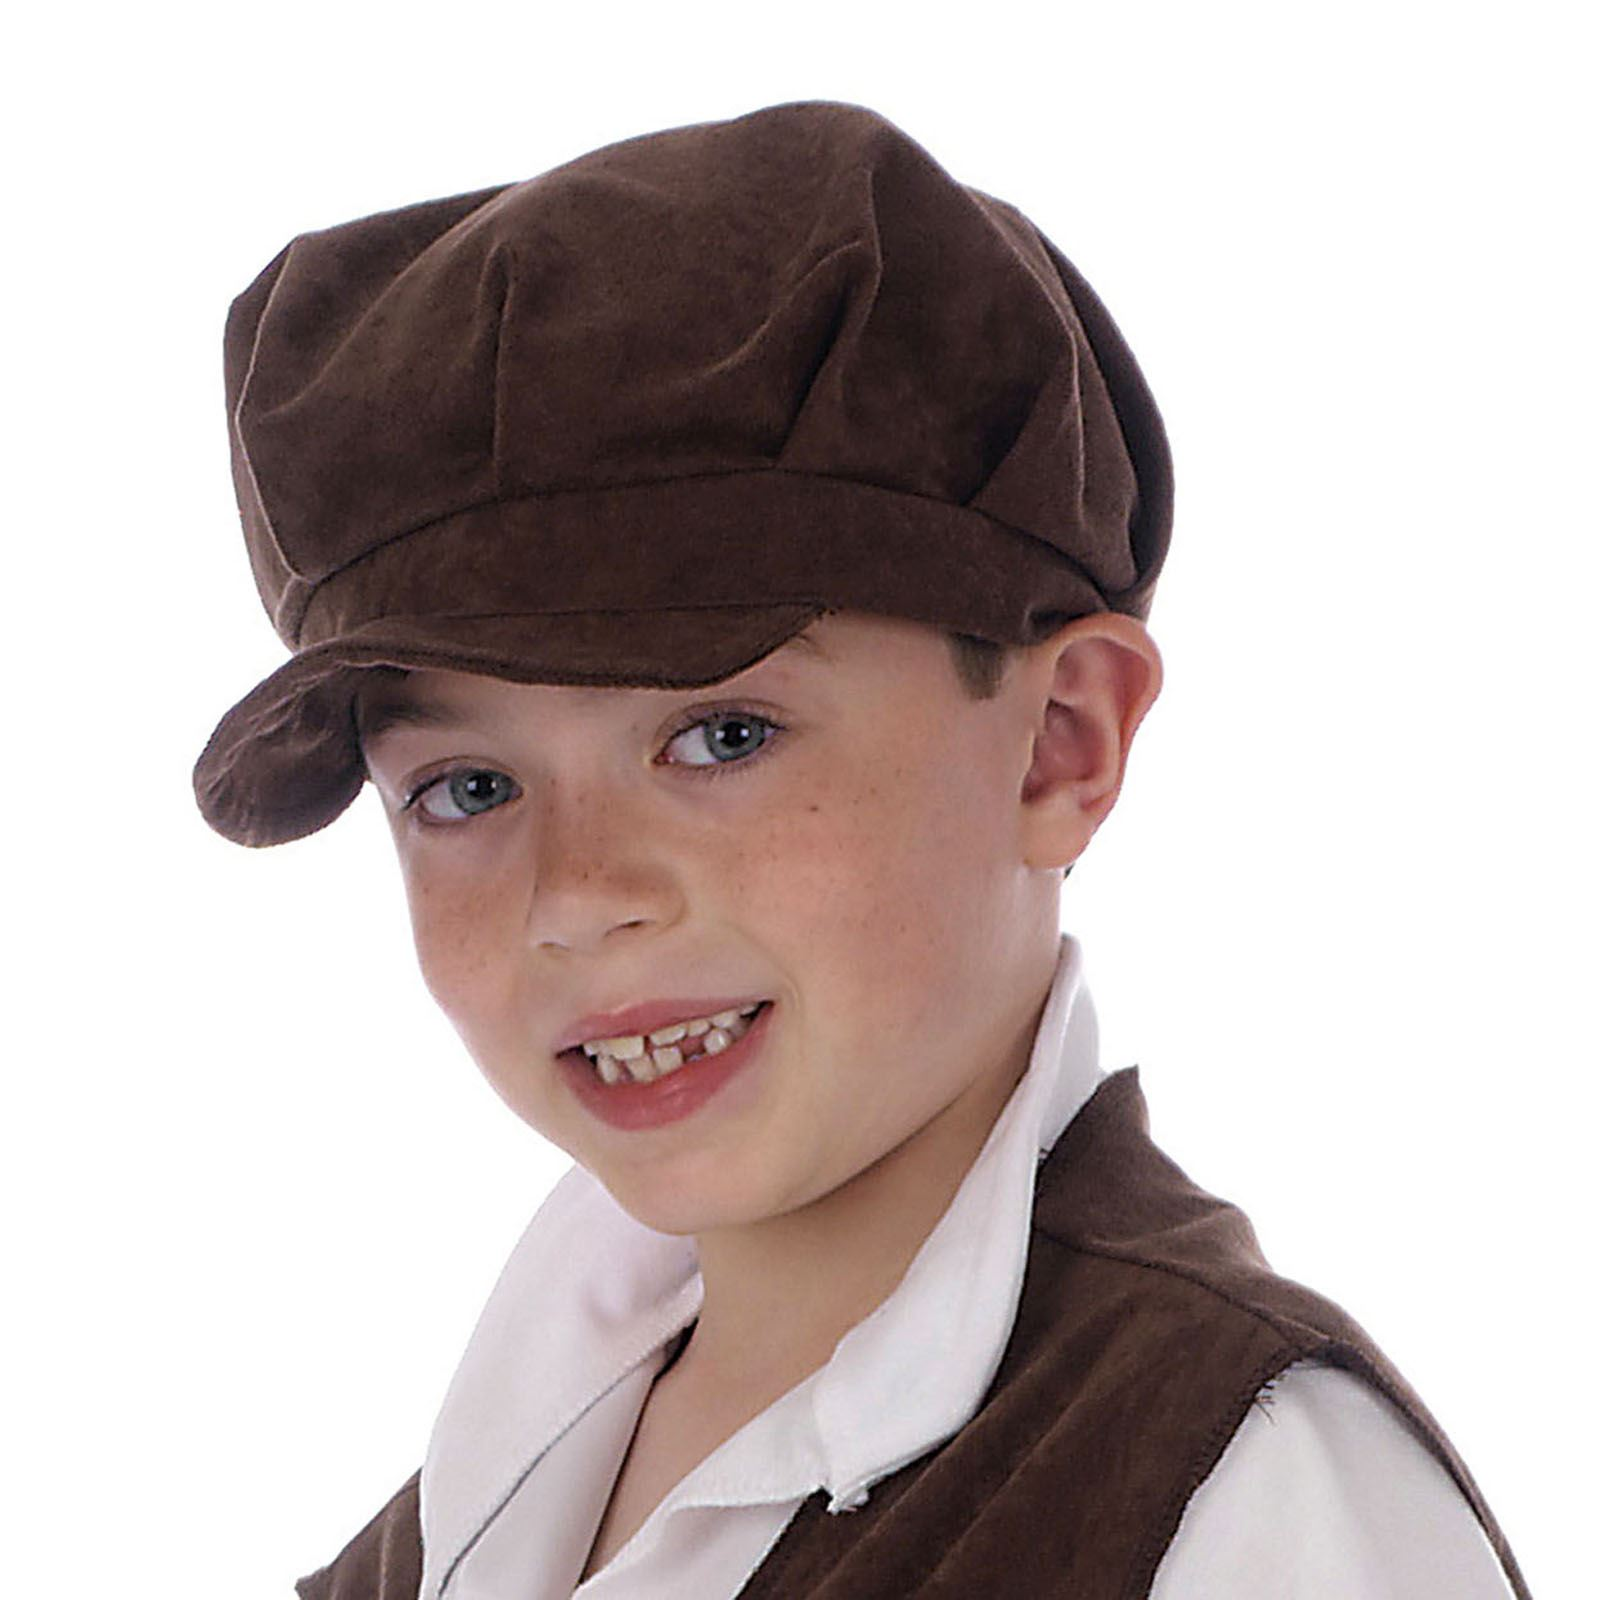 45ca7b3d Childs Oliver Pauper Hat Urchin Boy Girl Brown Victorian Flat Cap ...